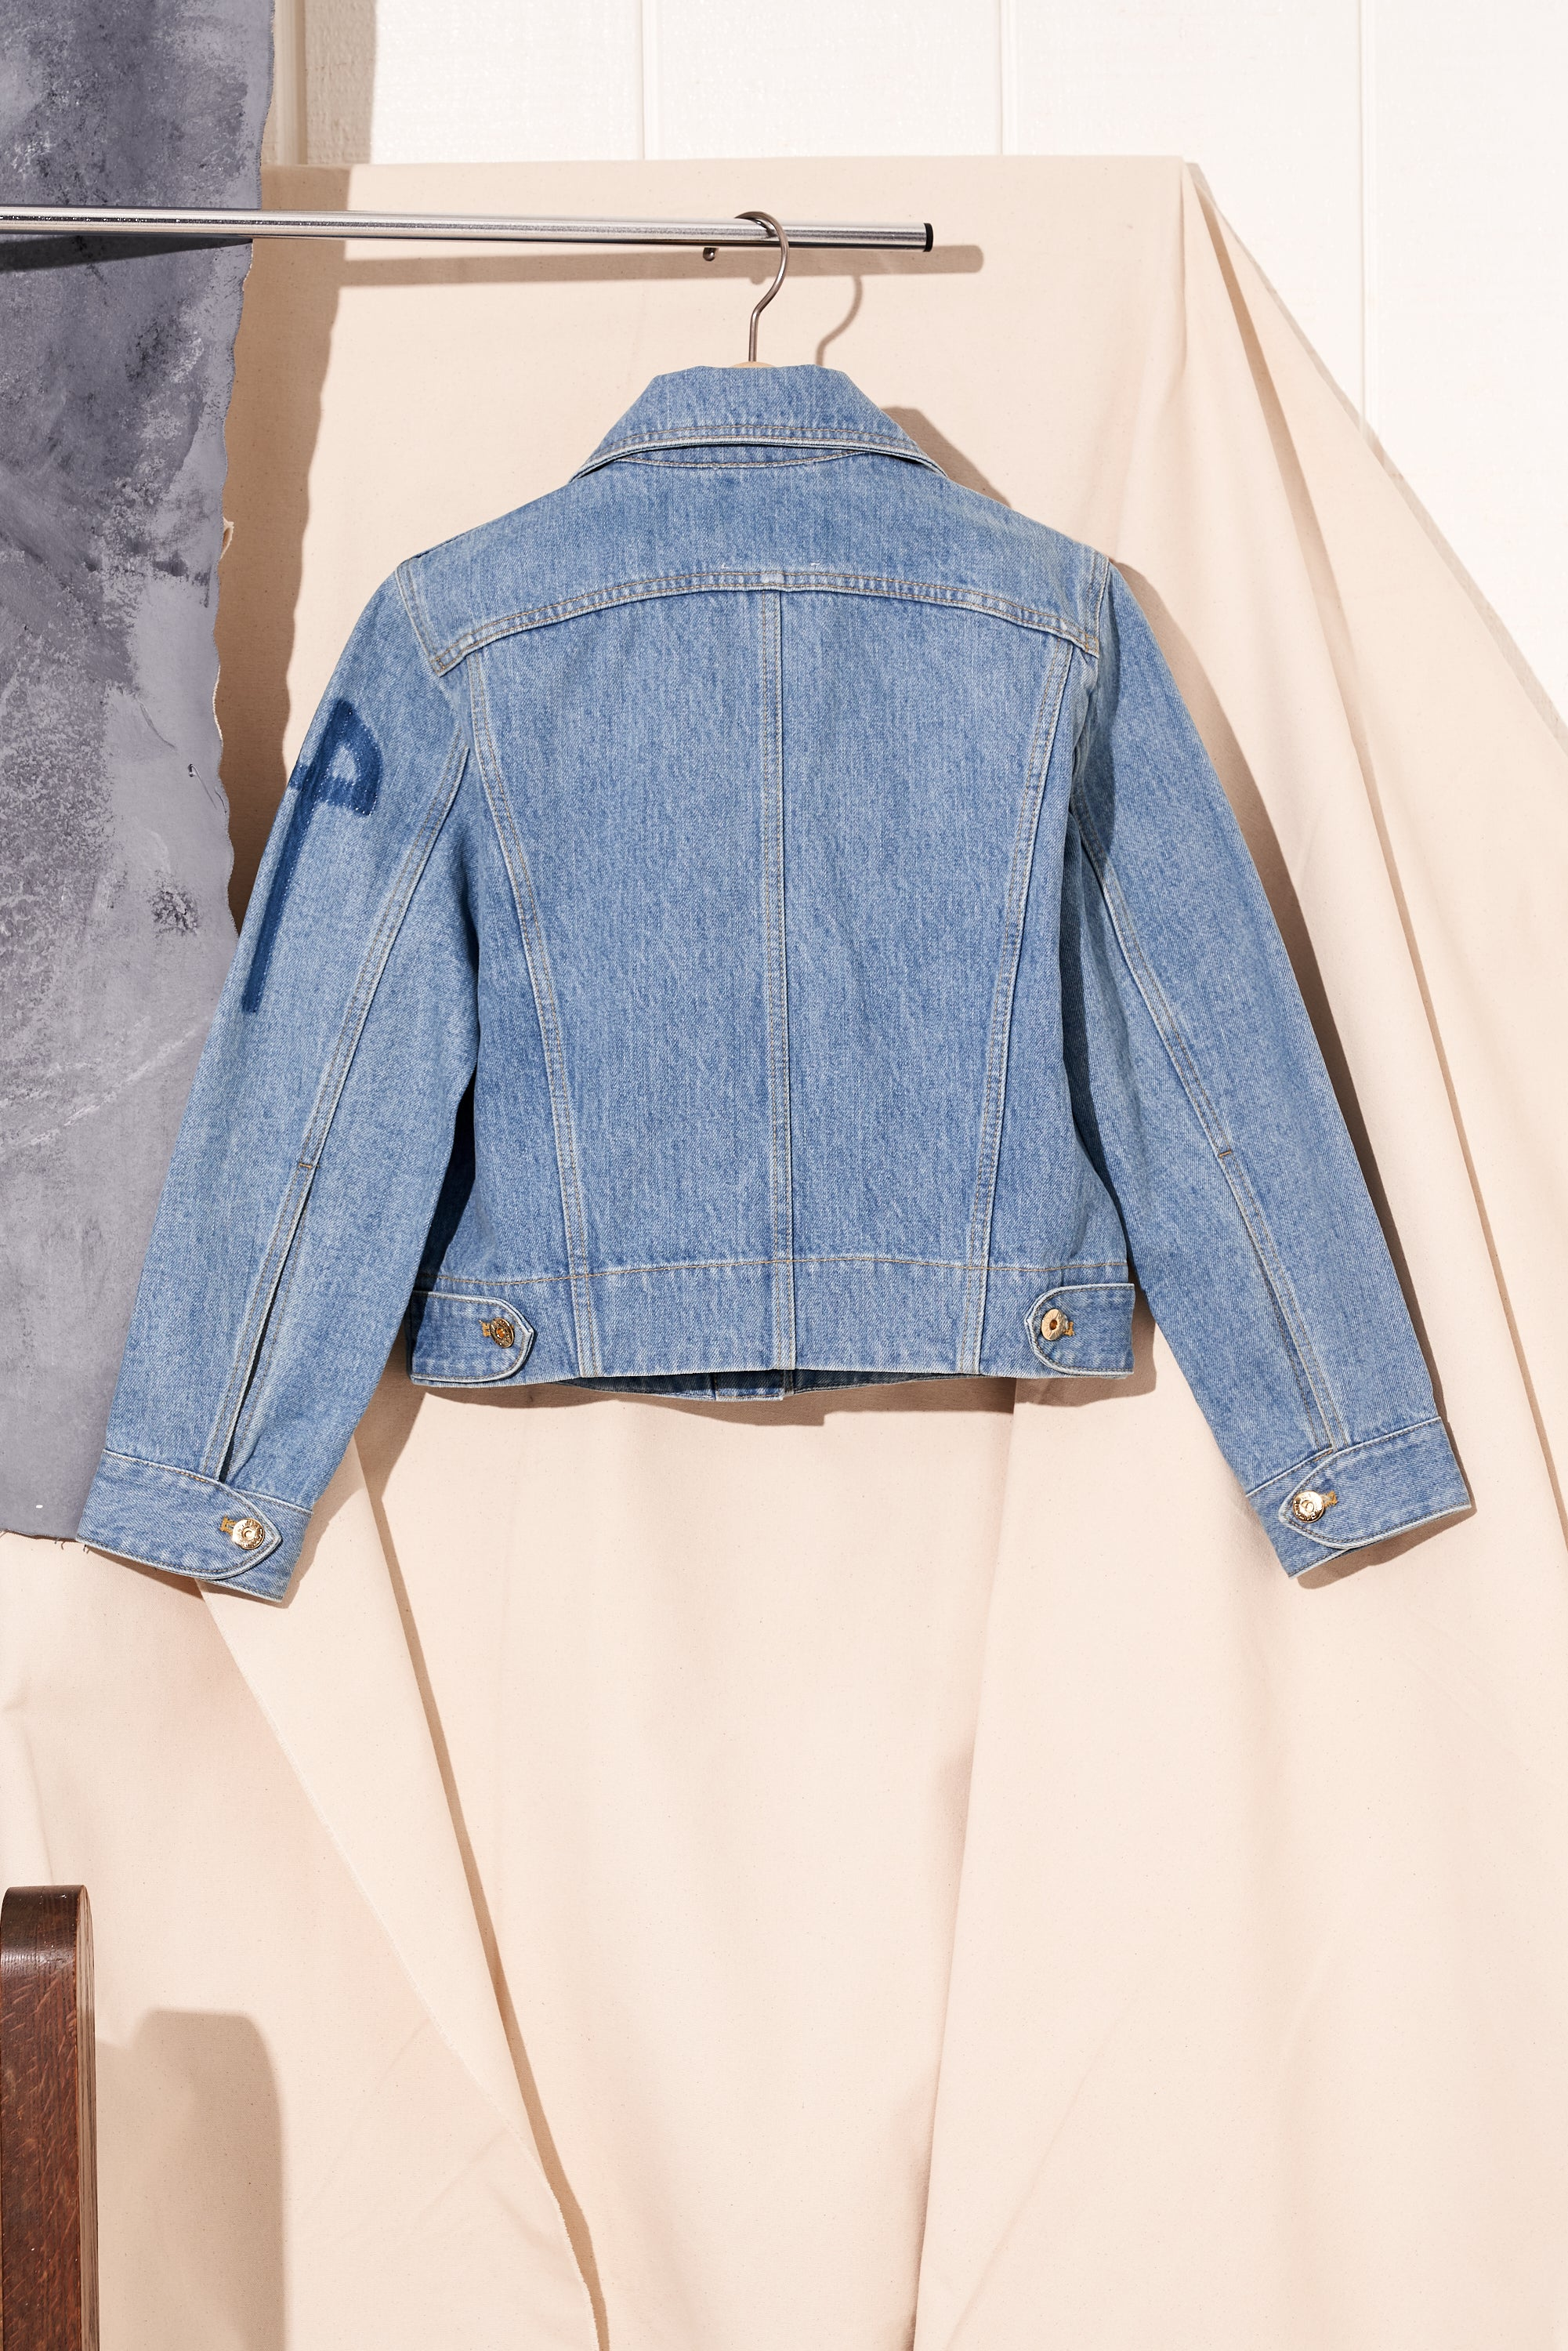 iconic denim jacket in light wash by patou, back view